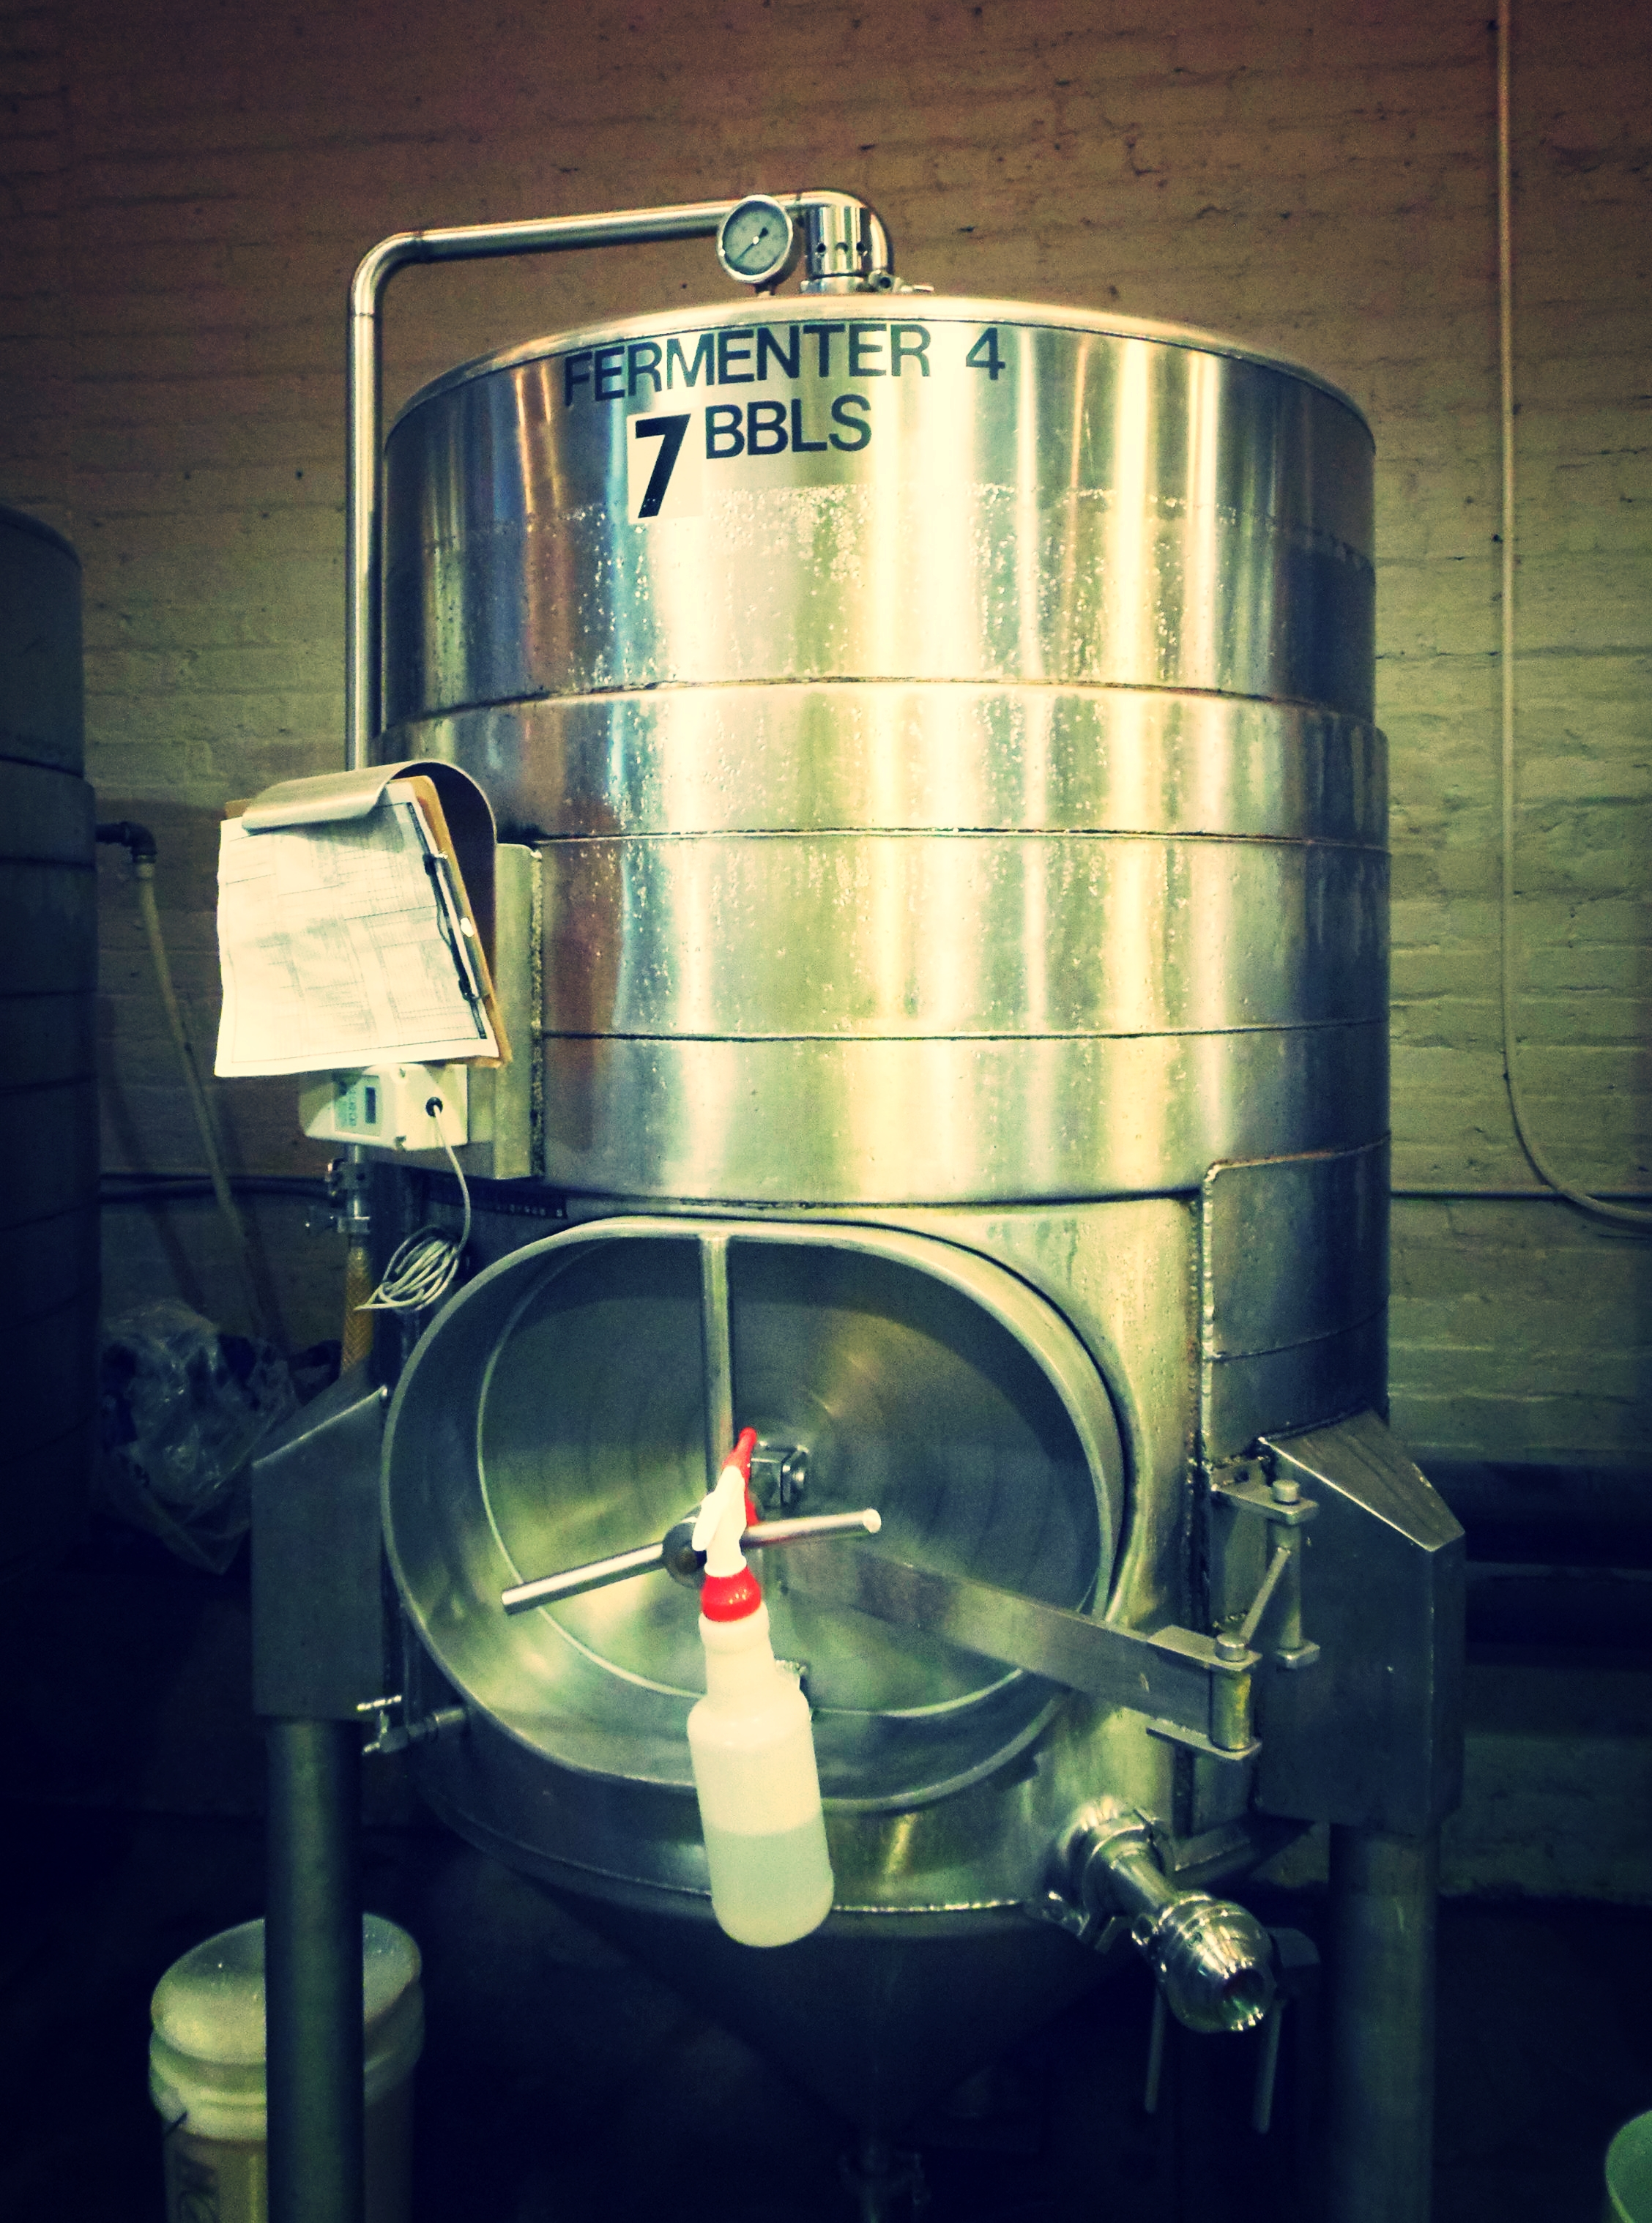 One of the fermenters in the brewery